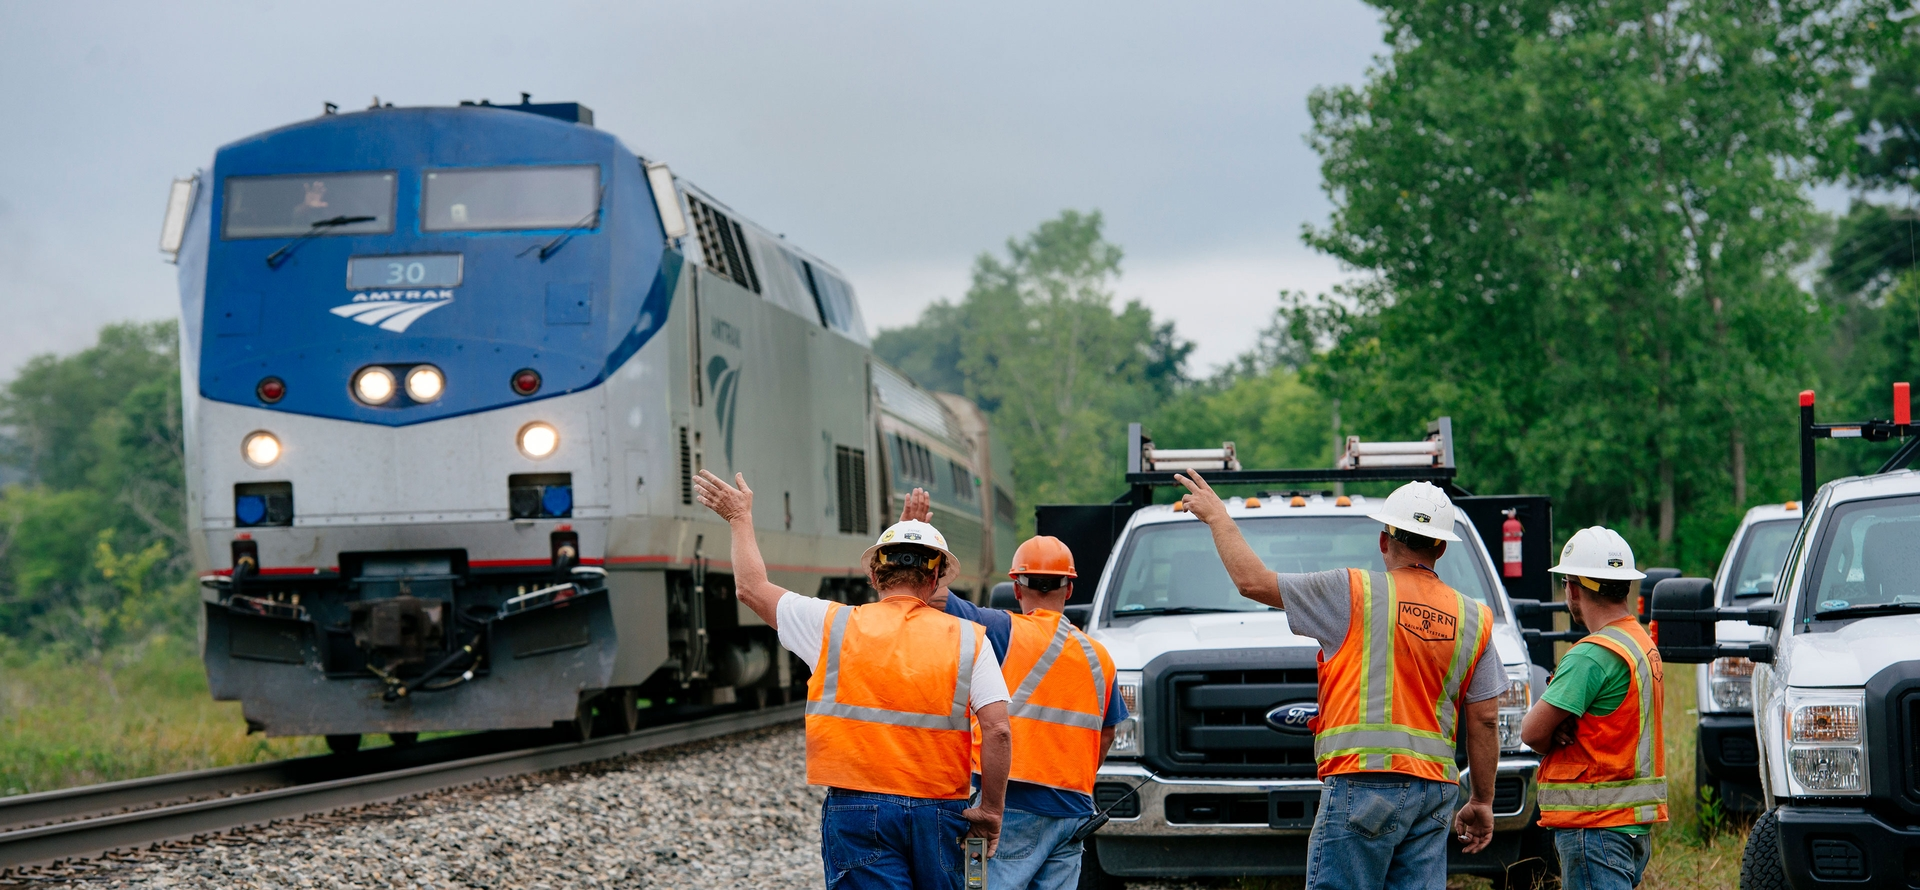 A group of workers wave at a departing train.